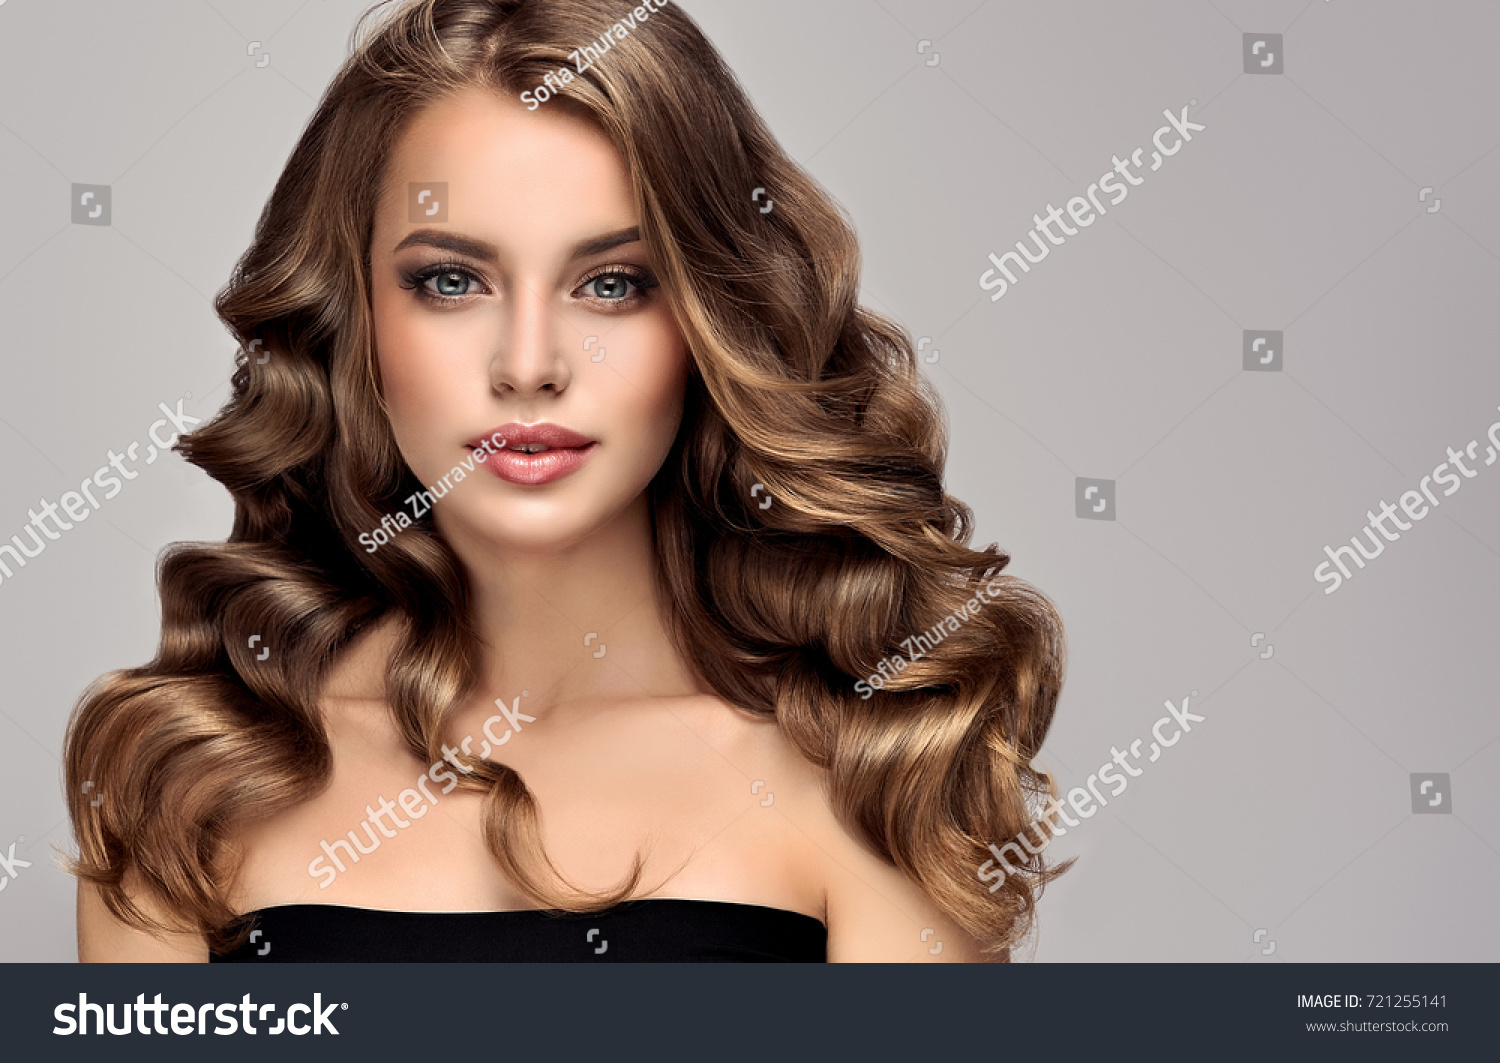 Brunette  girl with long  and   shiny curly hair .  Beautiful  model woman  with curly hairstyle   .Care and beauty of hair #721255141